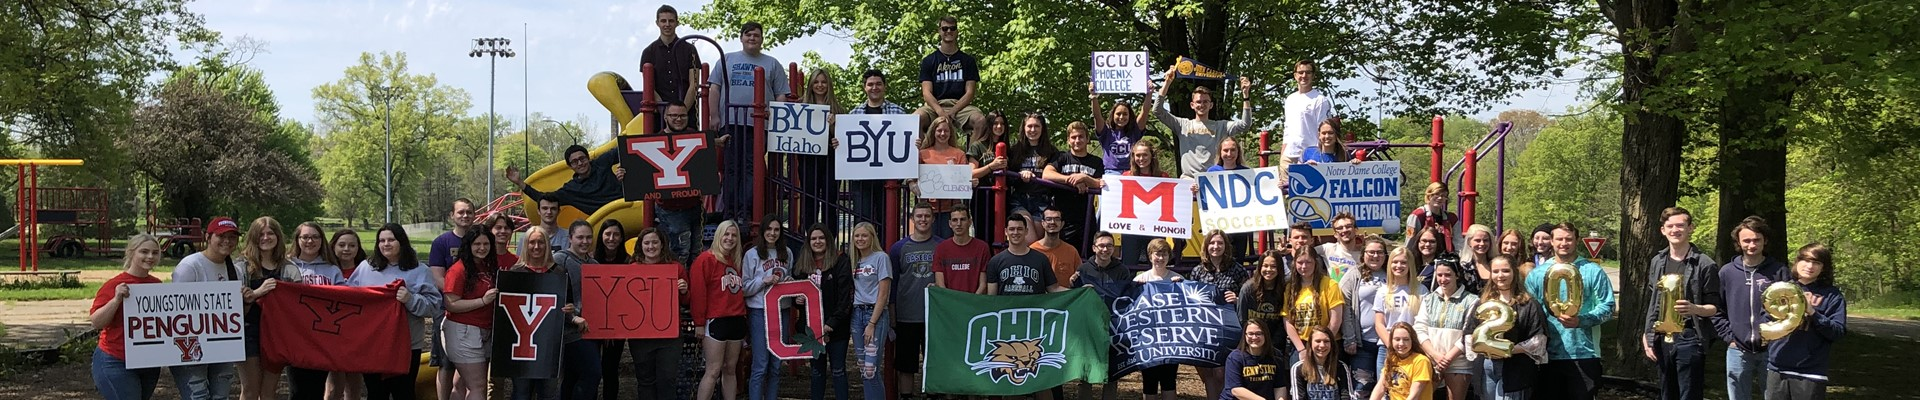 Senior class holding college signs